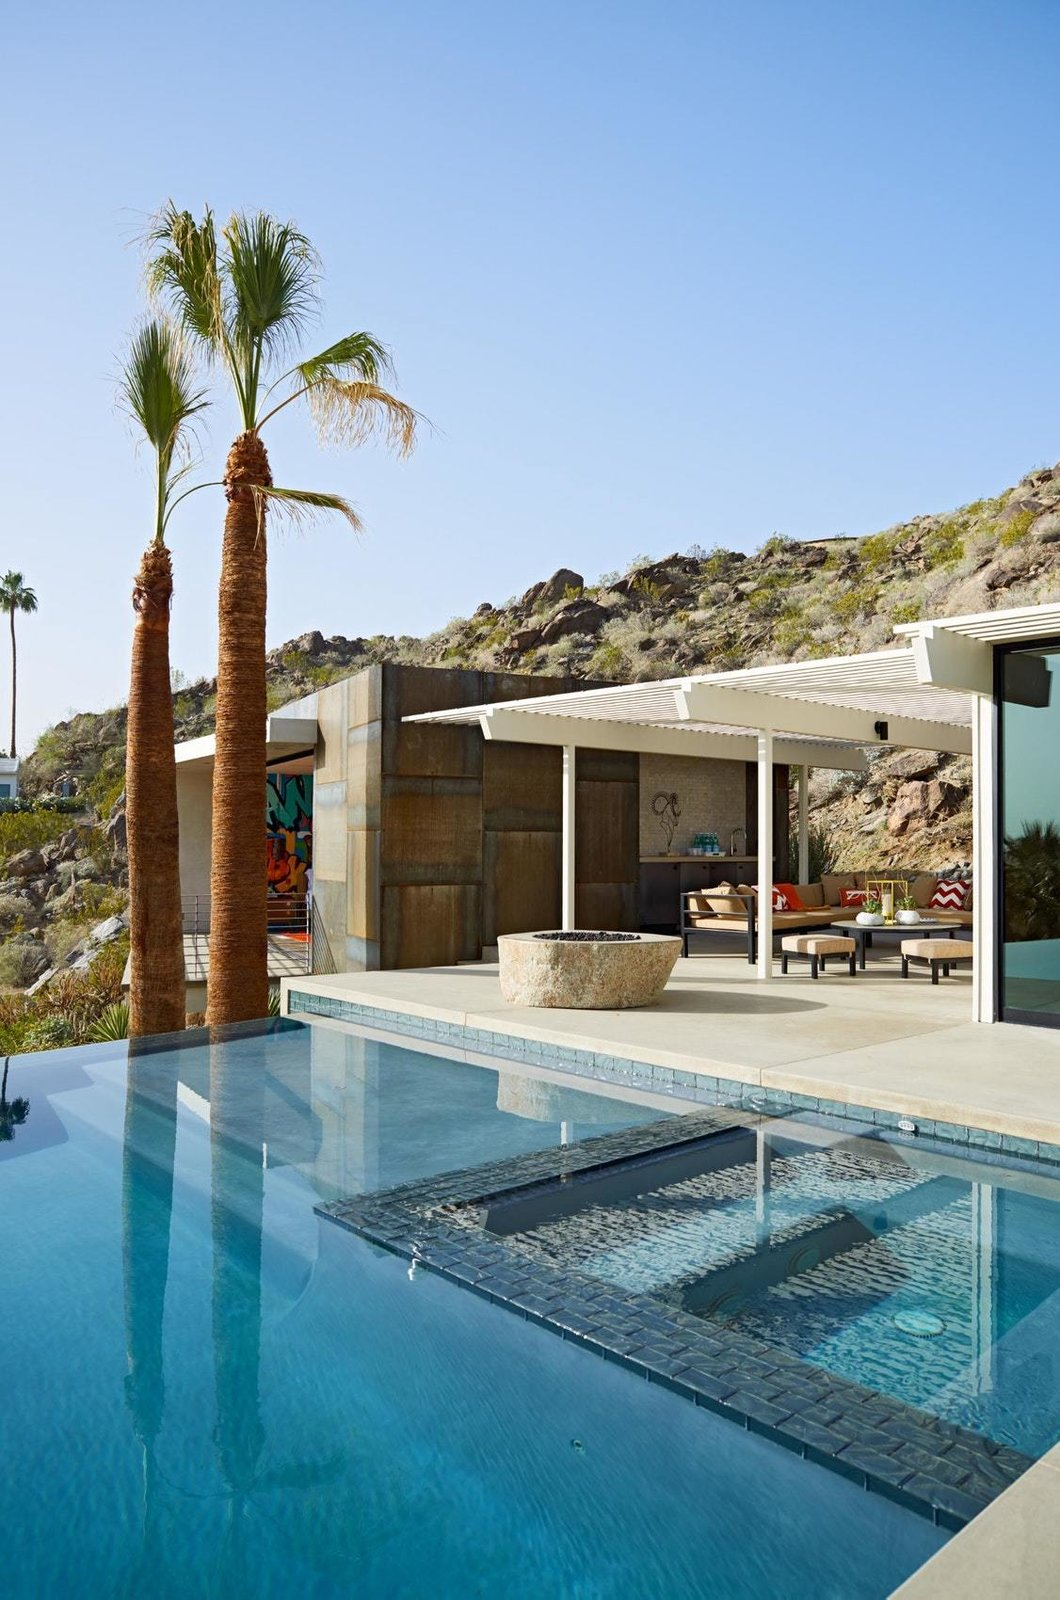 Outdoor, Concrete Patio, Porch, Deck, Trees, Salt Water Pools, Tubs, Shower, Infinity Pools, Tubs, Shower, Back Yard, Desert, and Swimming Pools, Tubs, Shower  On the Rocks